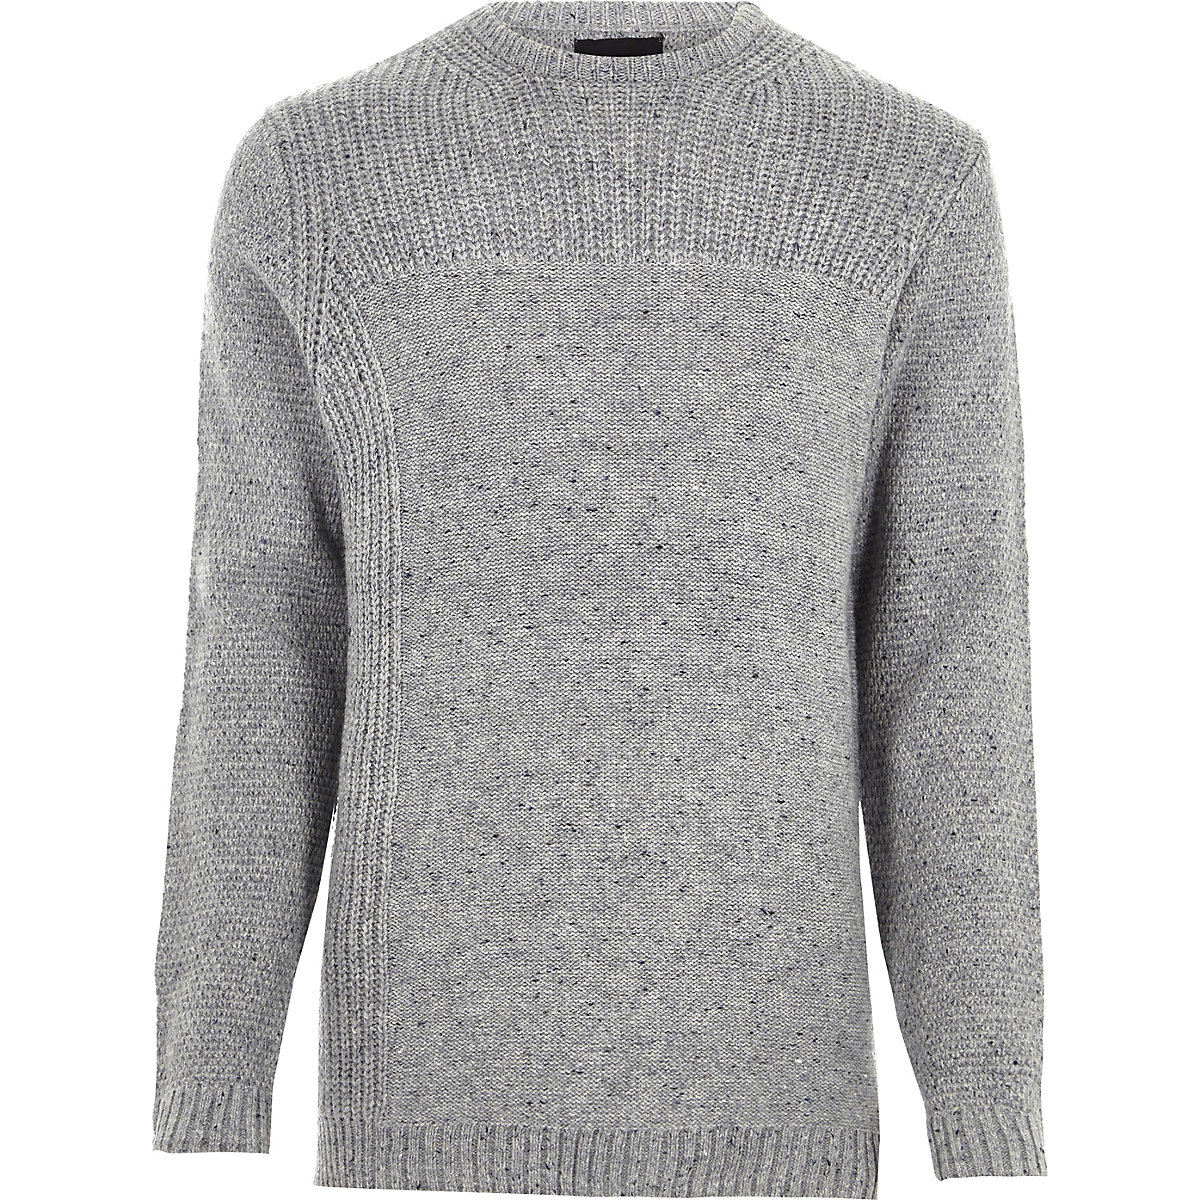 Grey mixed texture knit crew neck sweater